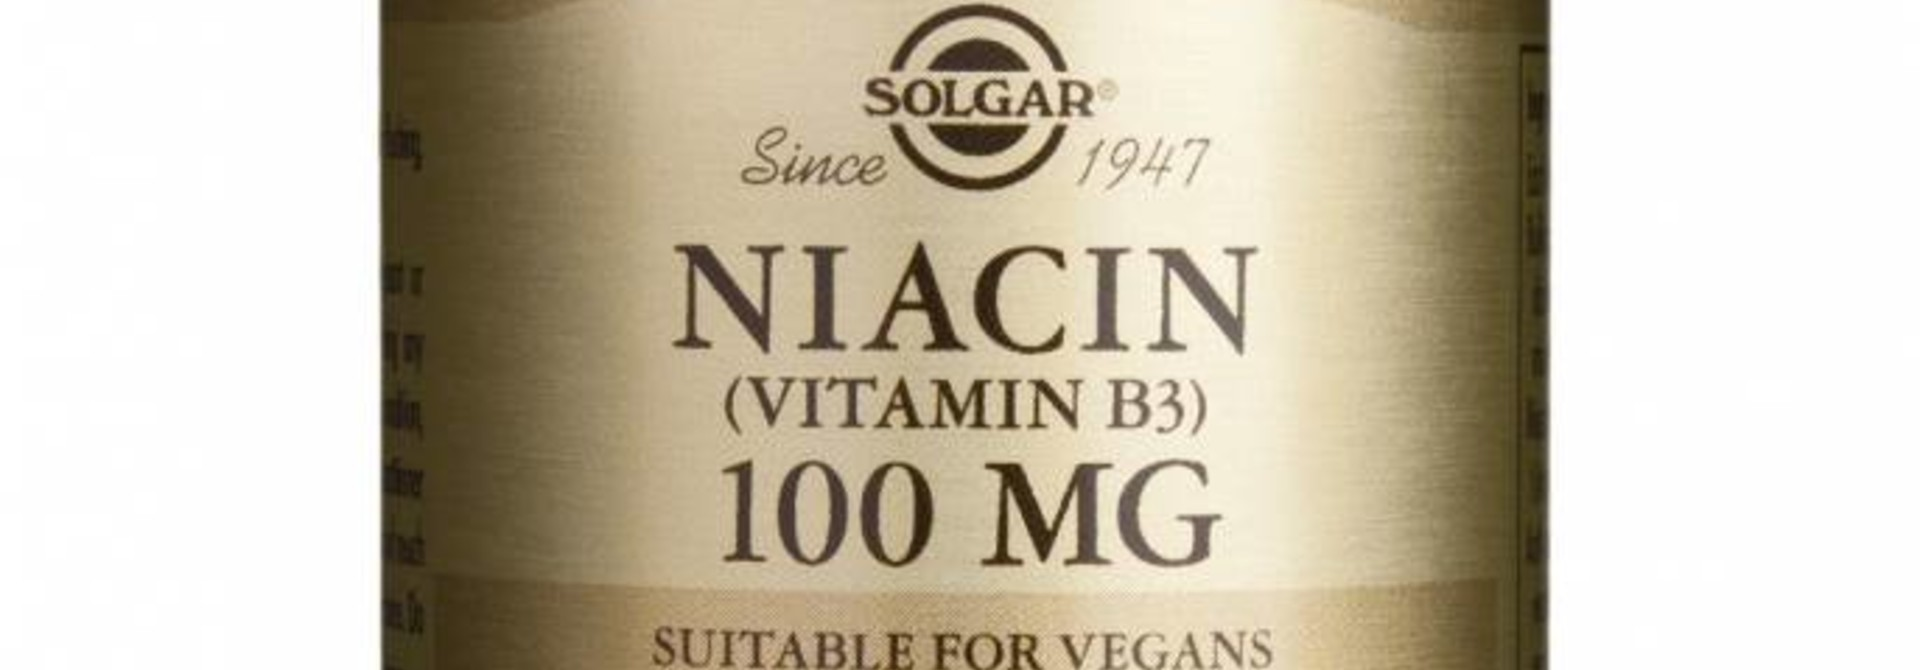 Niacin 100 mg 100 tabletten